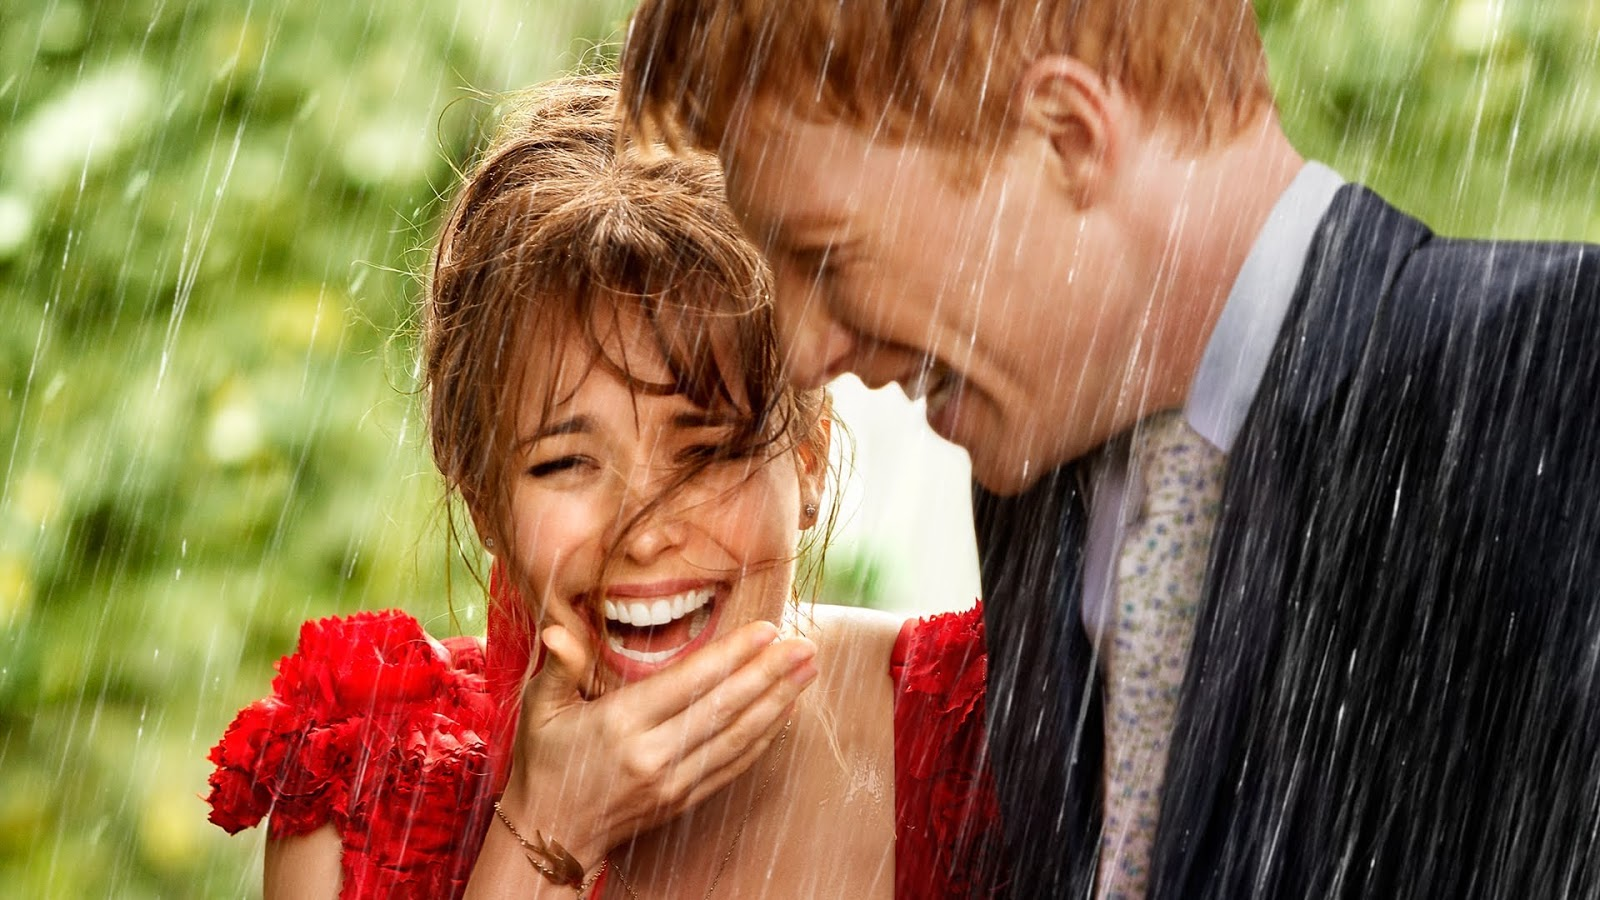 About Time (2013) movie